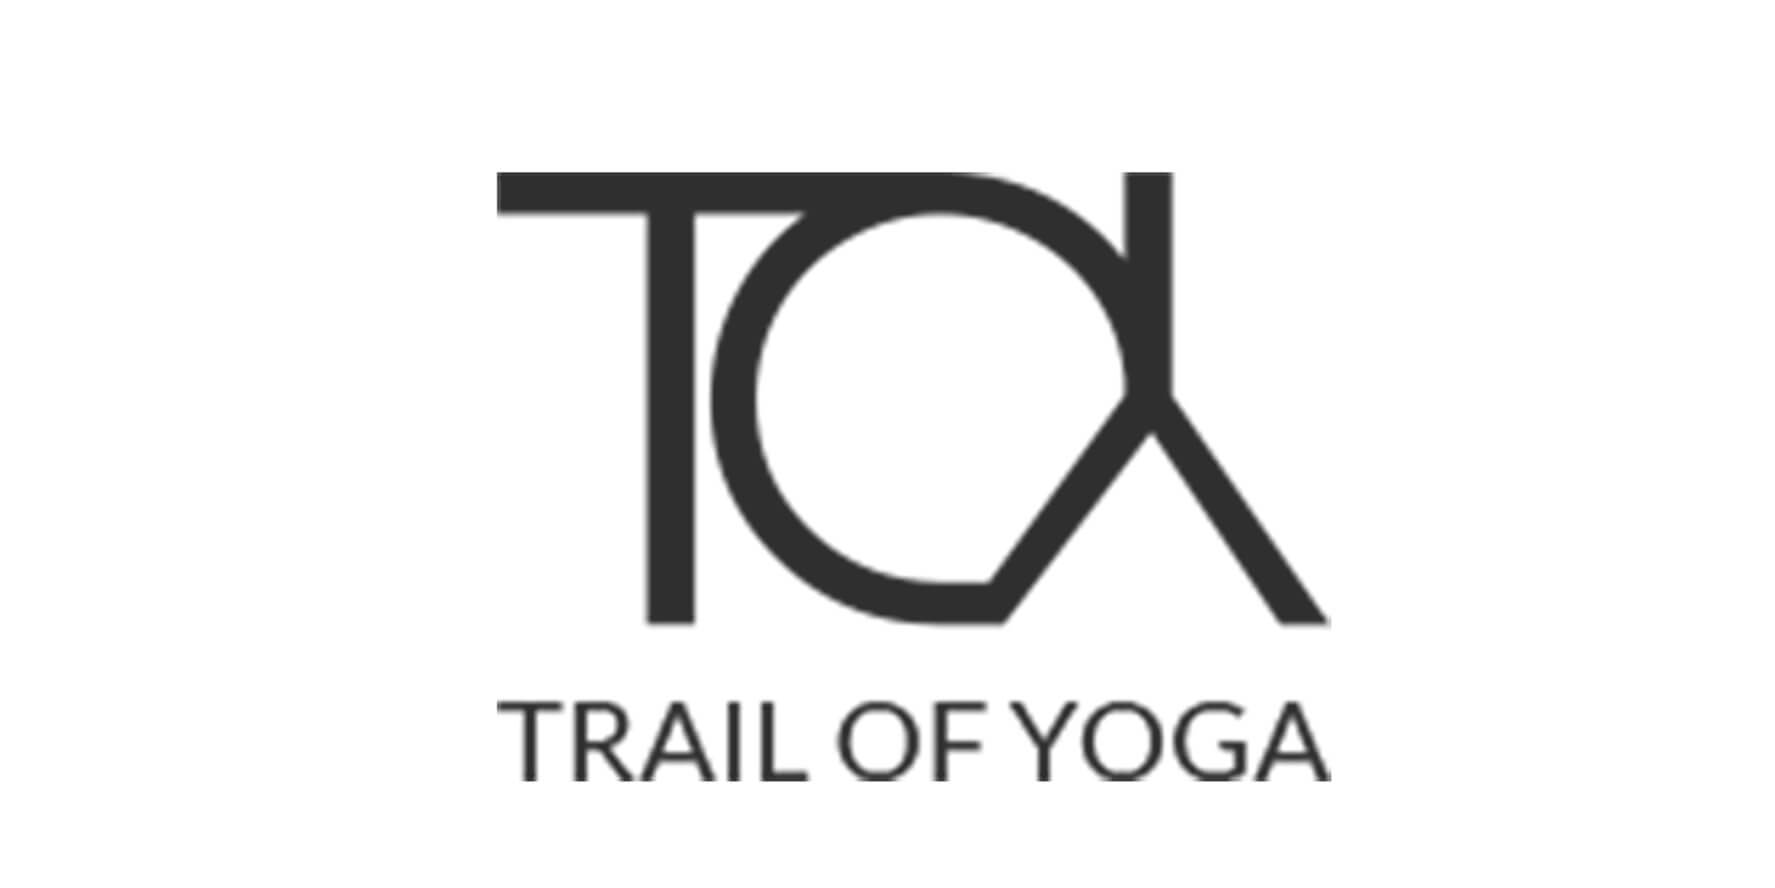 Trail of Yoga